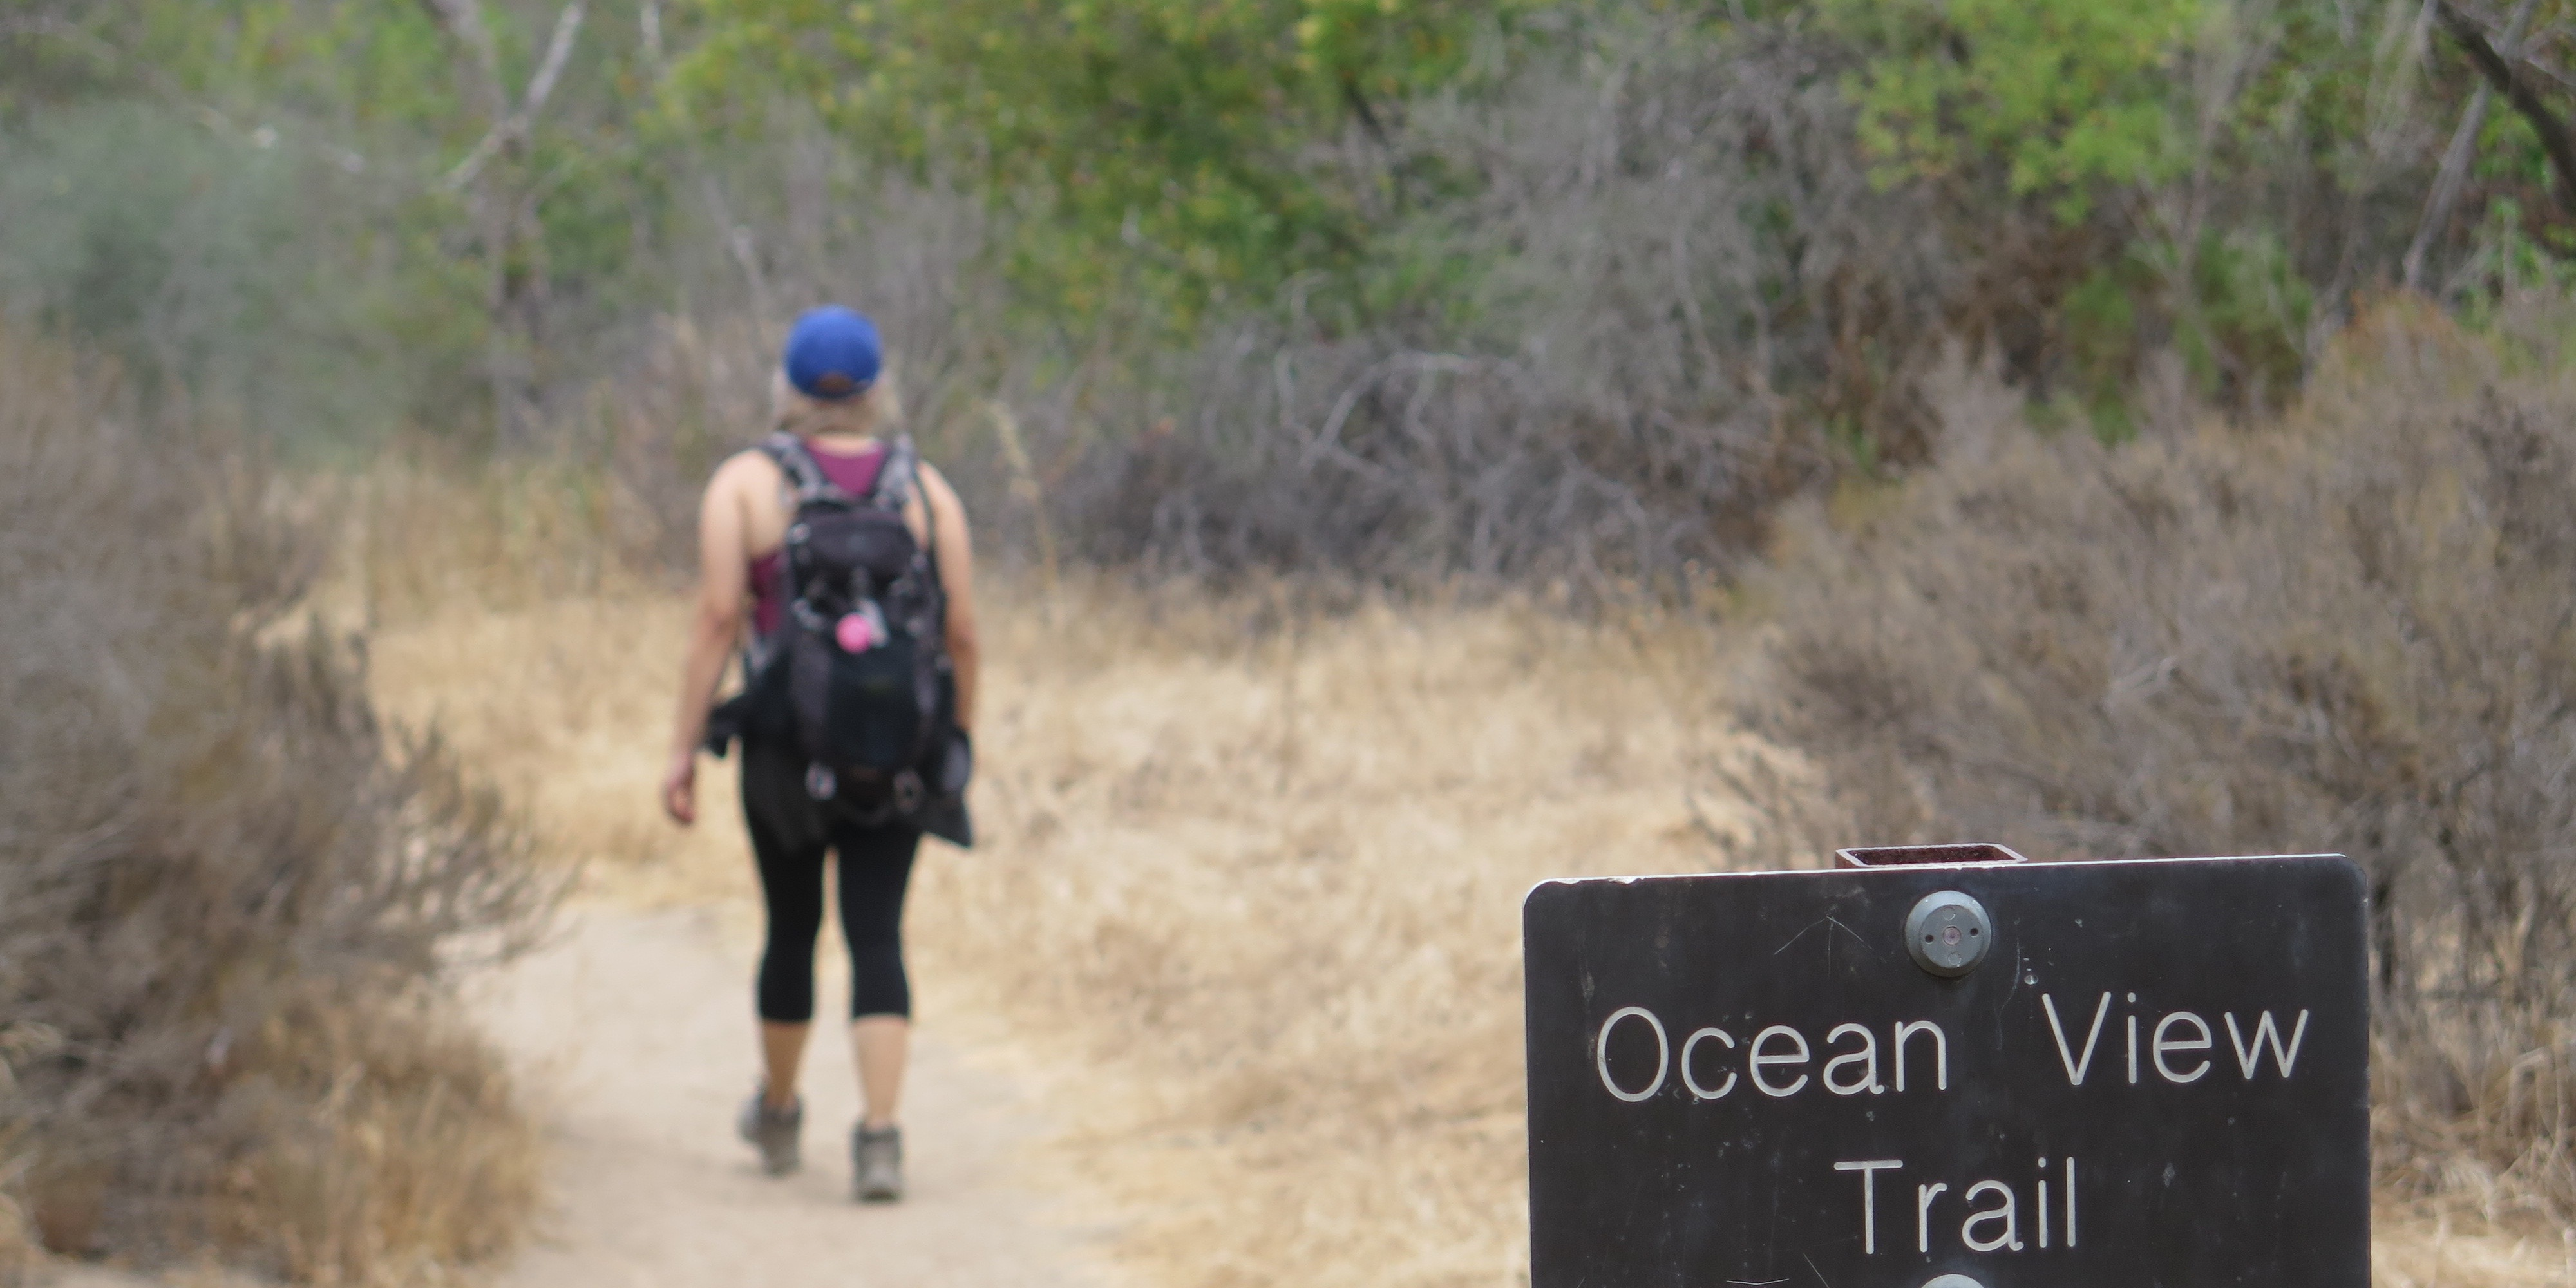 Ocean View Trail sign with hiker in the background